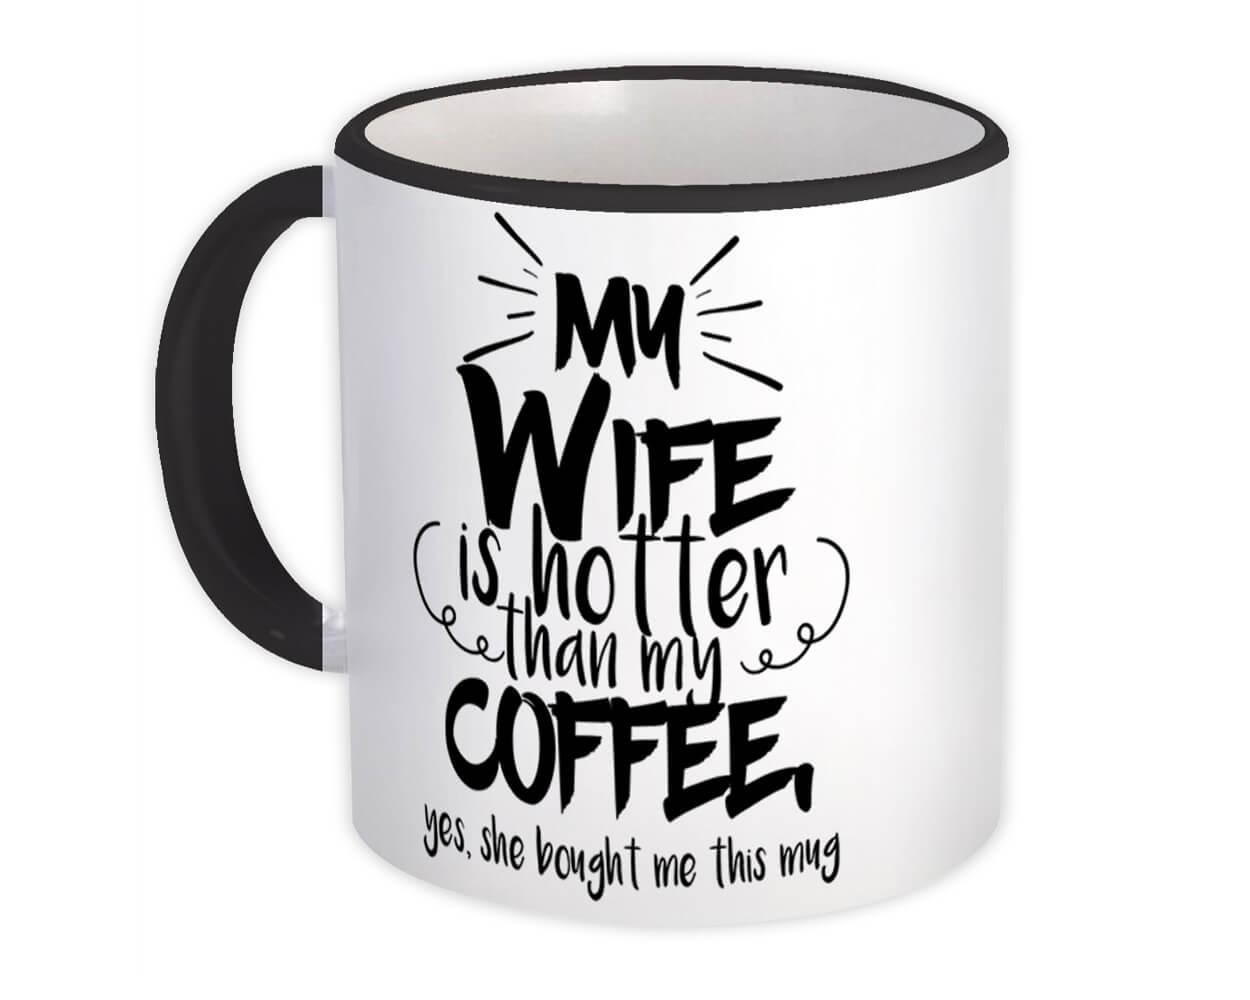 My Wife is Hotter Than My Coffee : Gift Mug Yes She Bought Me This Husband